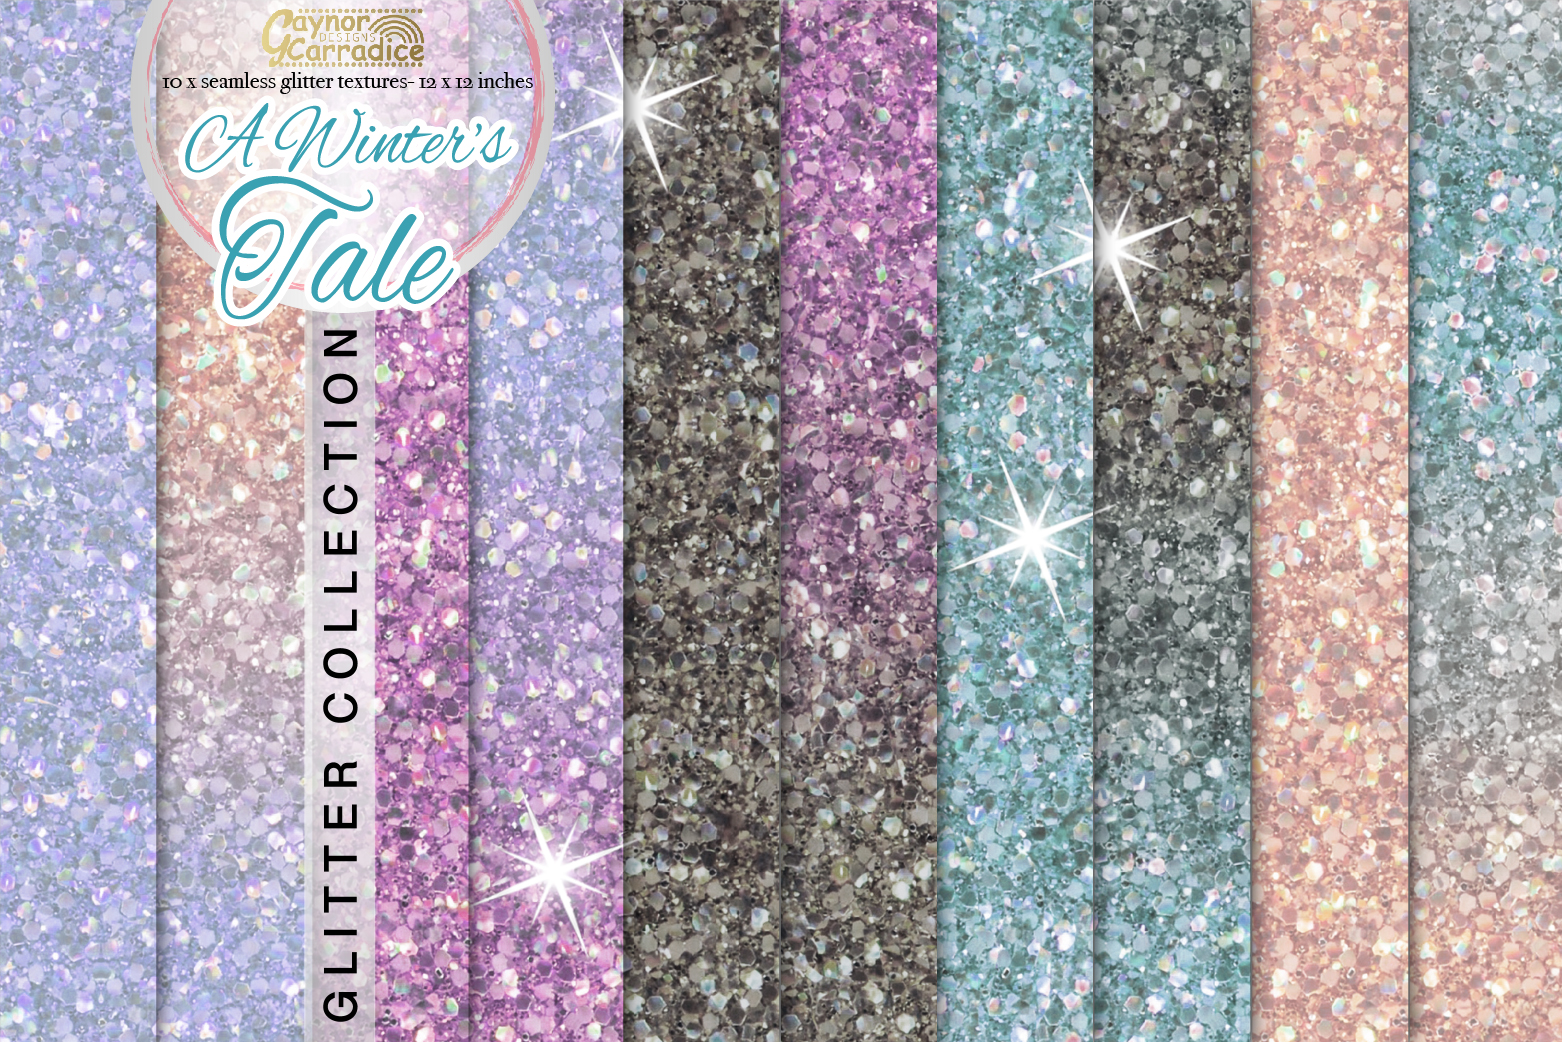 A winters tale - winter Glitter seamless textures example image 1